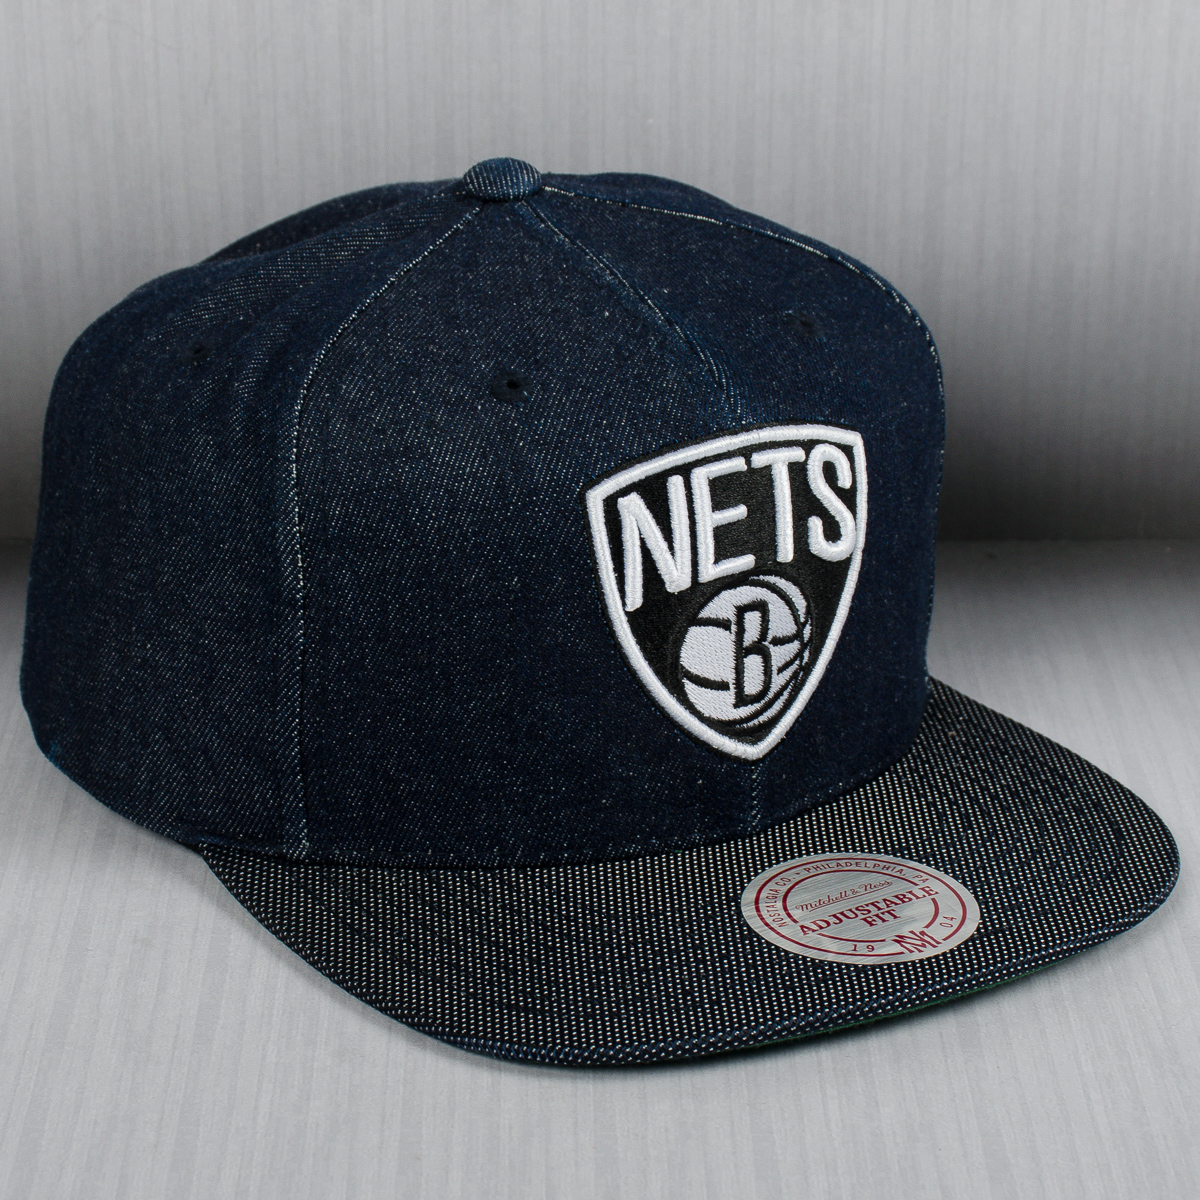 sports shoes 8b09d 8f21c Mitchell   Ness NBA Brooklyn Nets Raw Denim Snapback Cap - NBA Shop  Brooklyn Nets Merchandise - Superfanas.lt